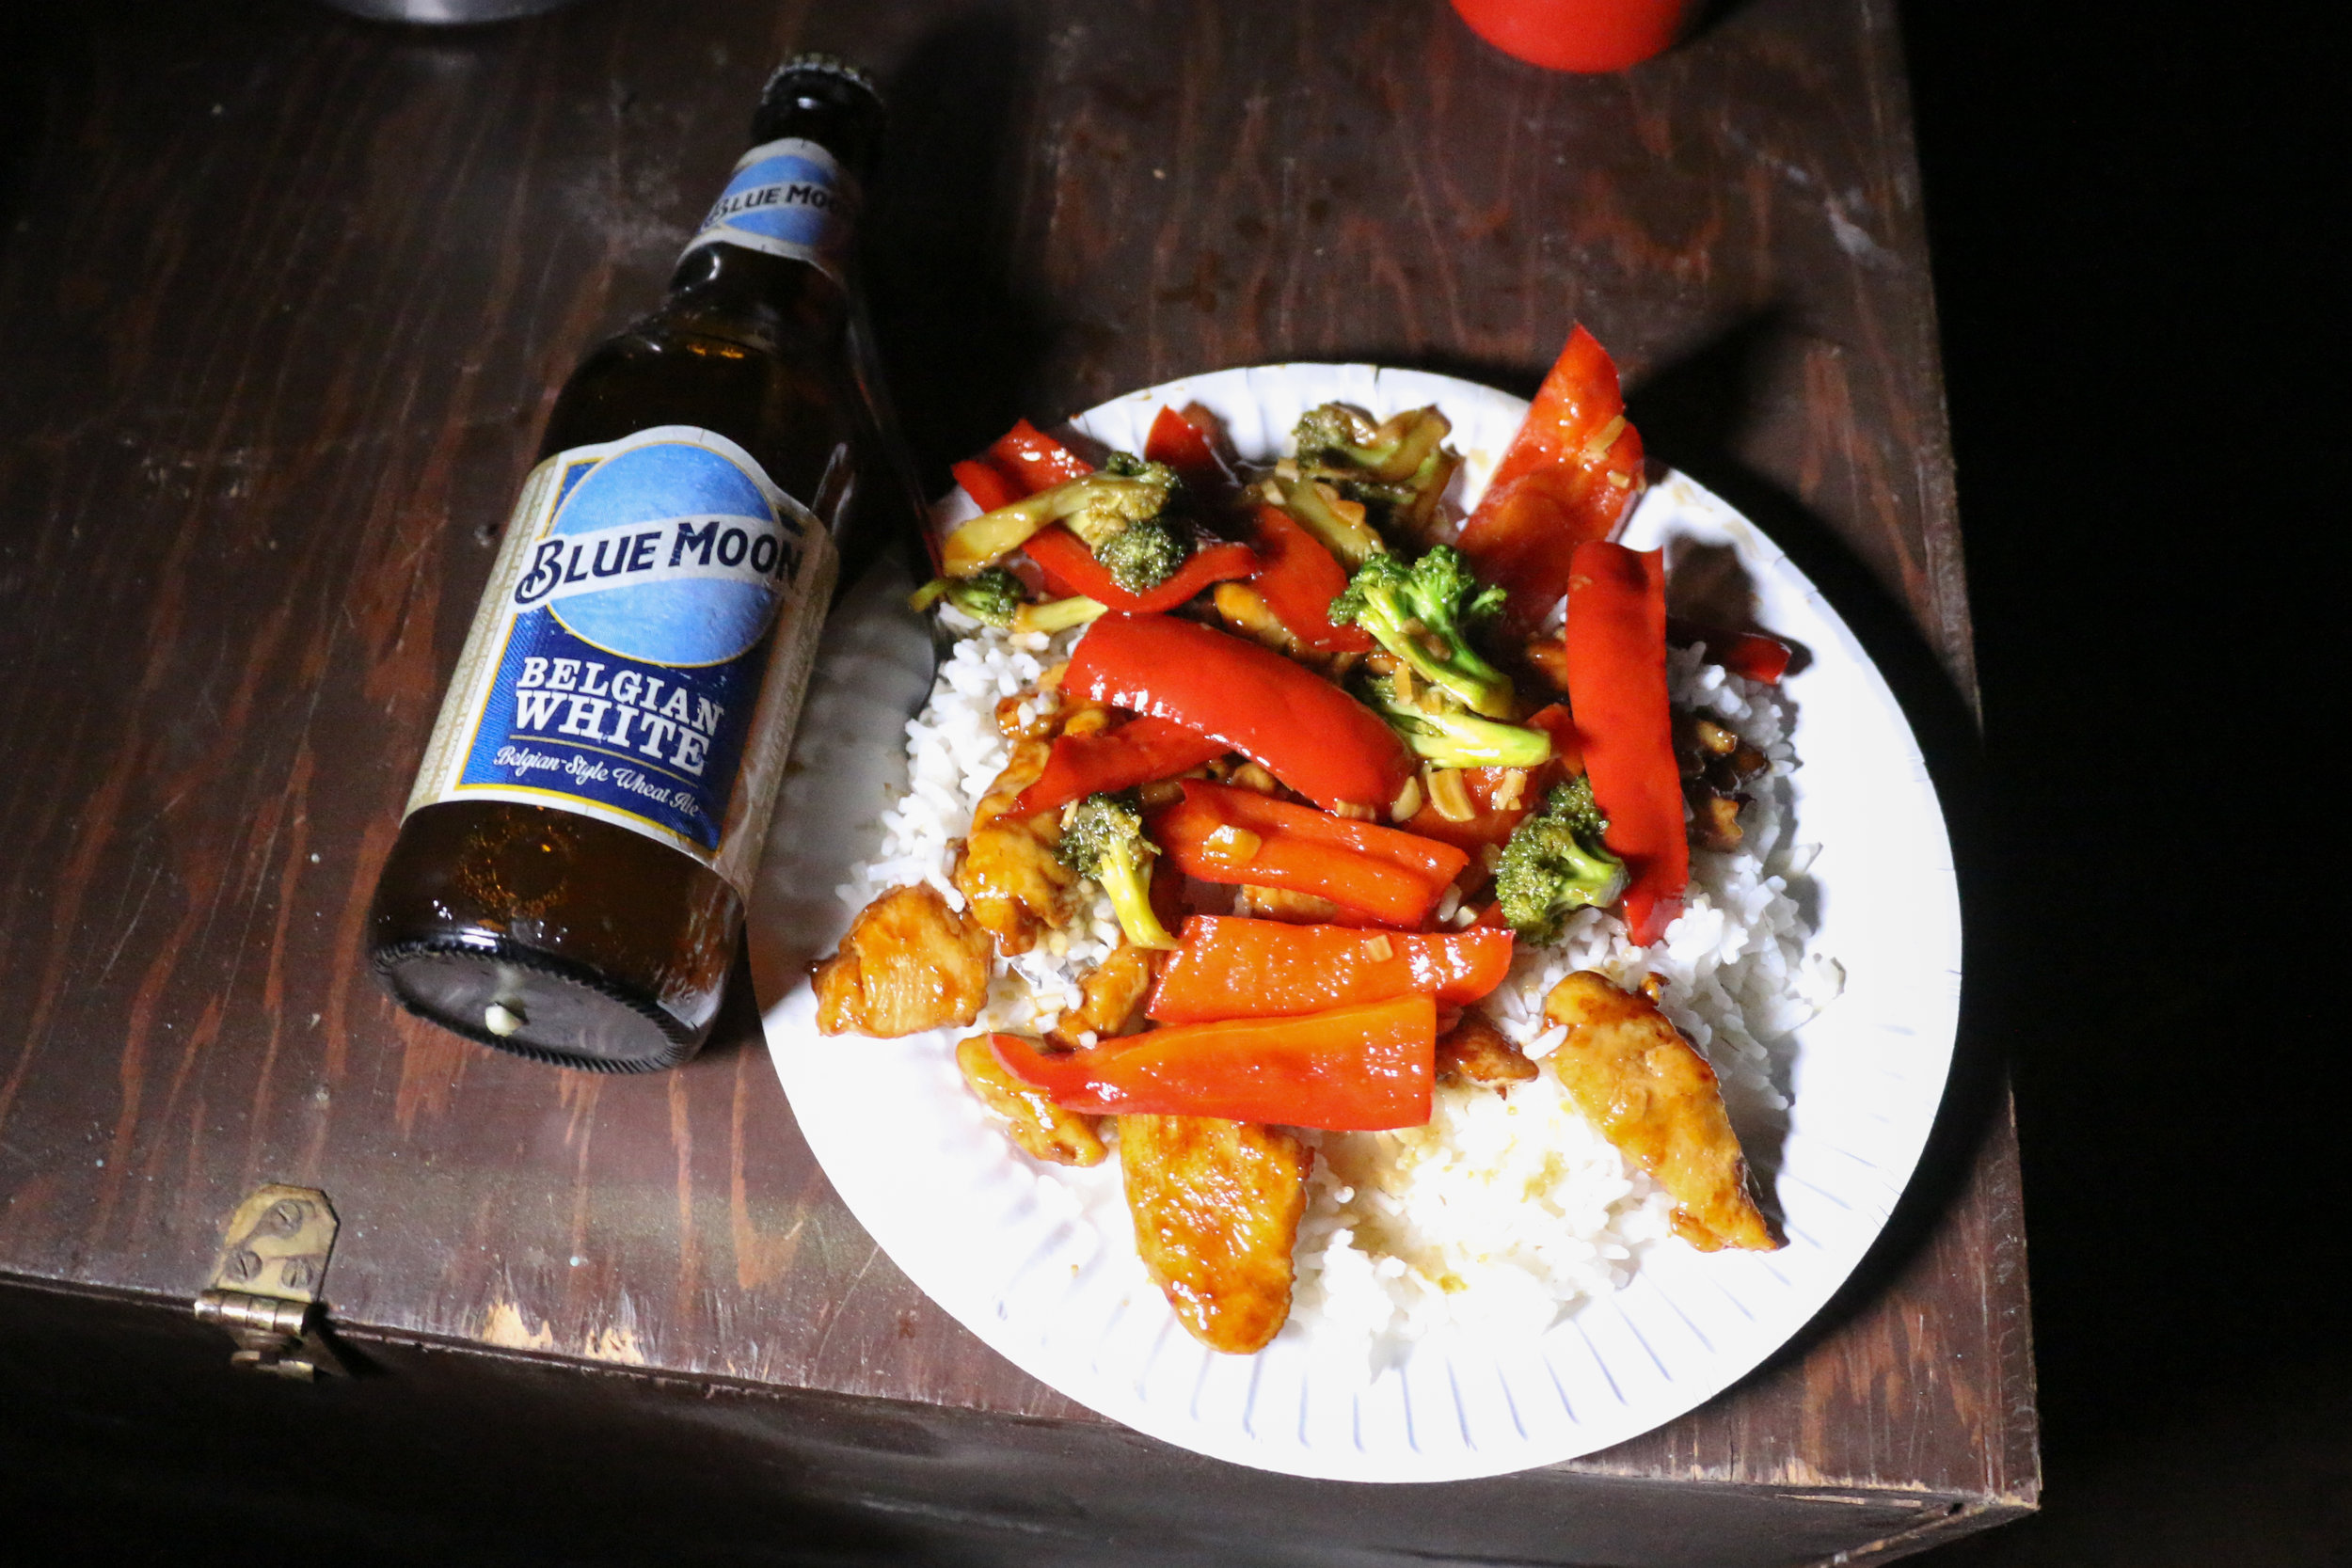 Night #3 dinner - stir-fry and beer!